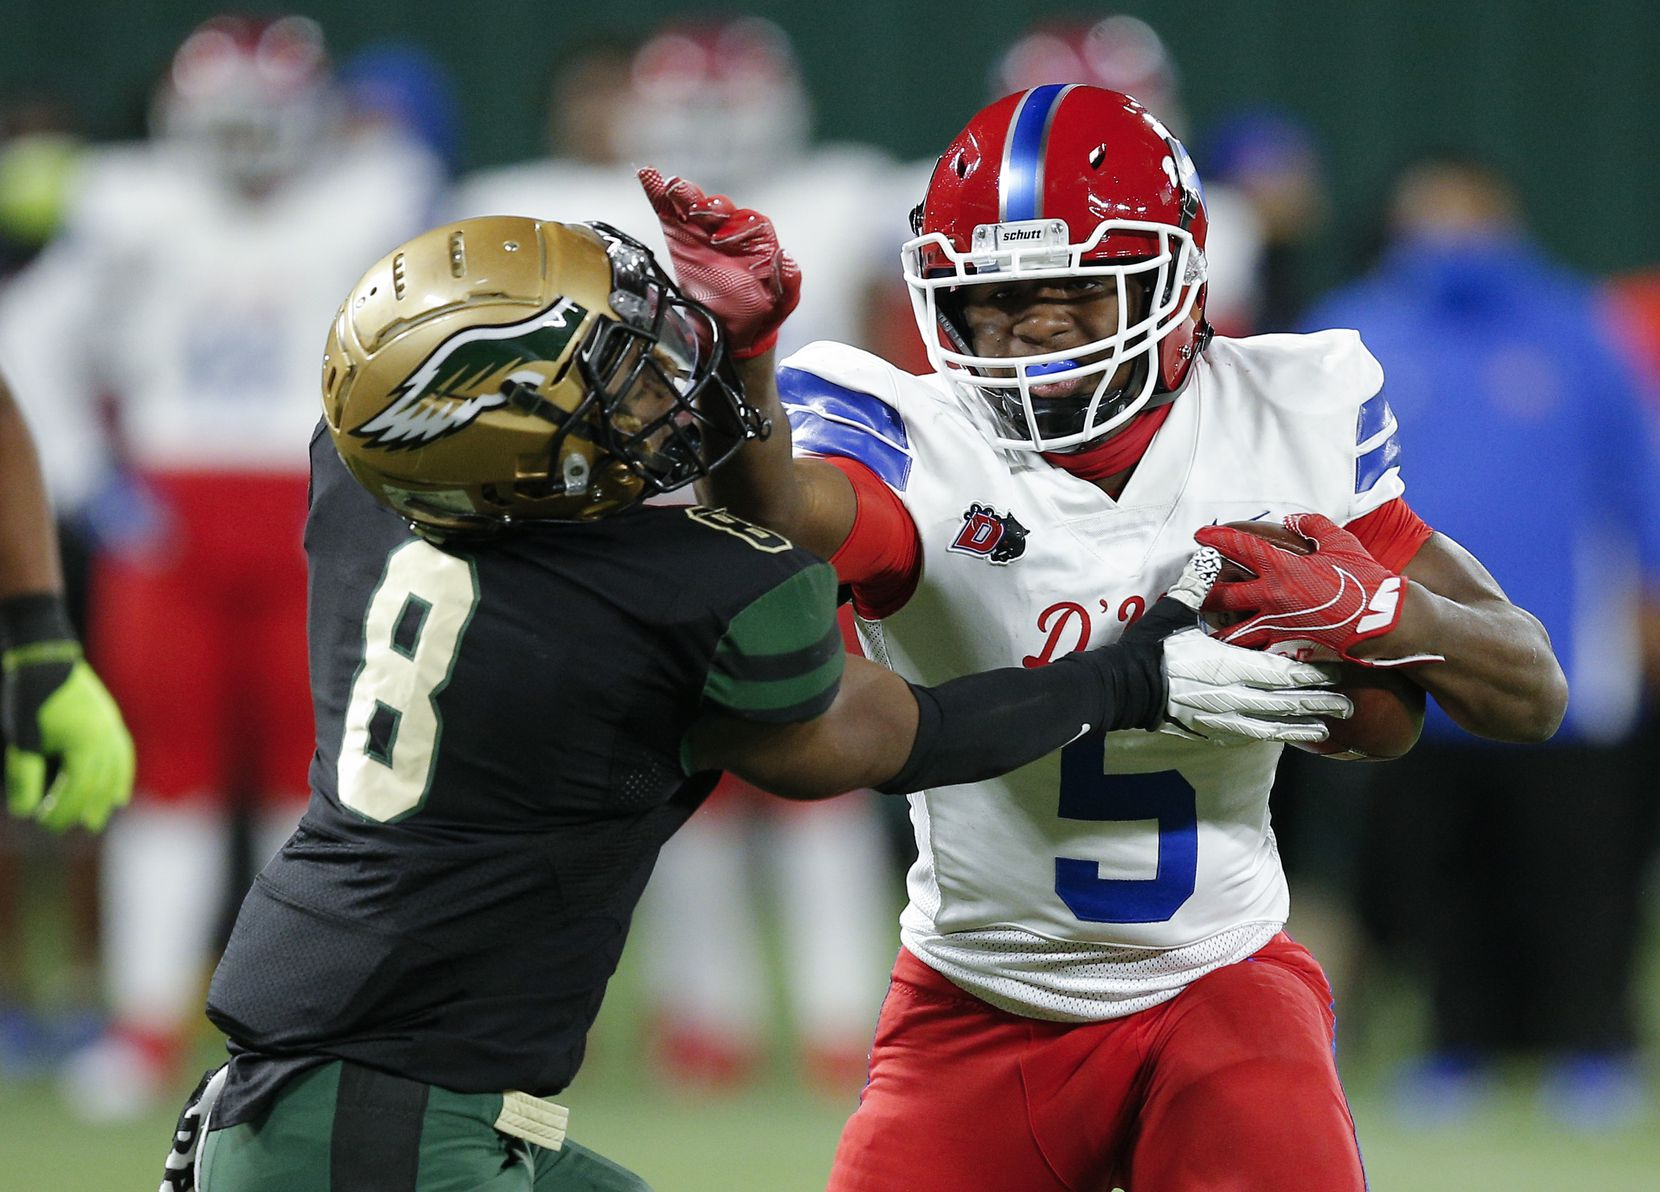 Duncanville junior running back Malachi Medlock (5) battle DeSoto senior safety D'verryon Foster (8) for yardage during the first half of a Class 6A Division I Region II final high school football game, Saturday, January 2, 2021. (Brandon Wade/Special Contributor)